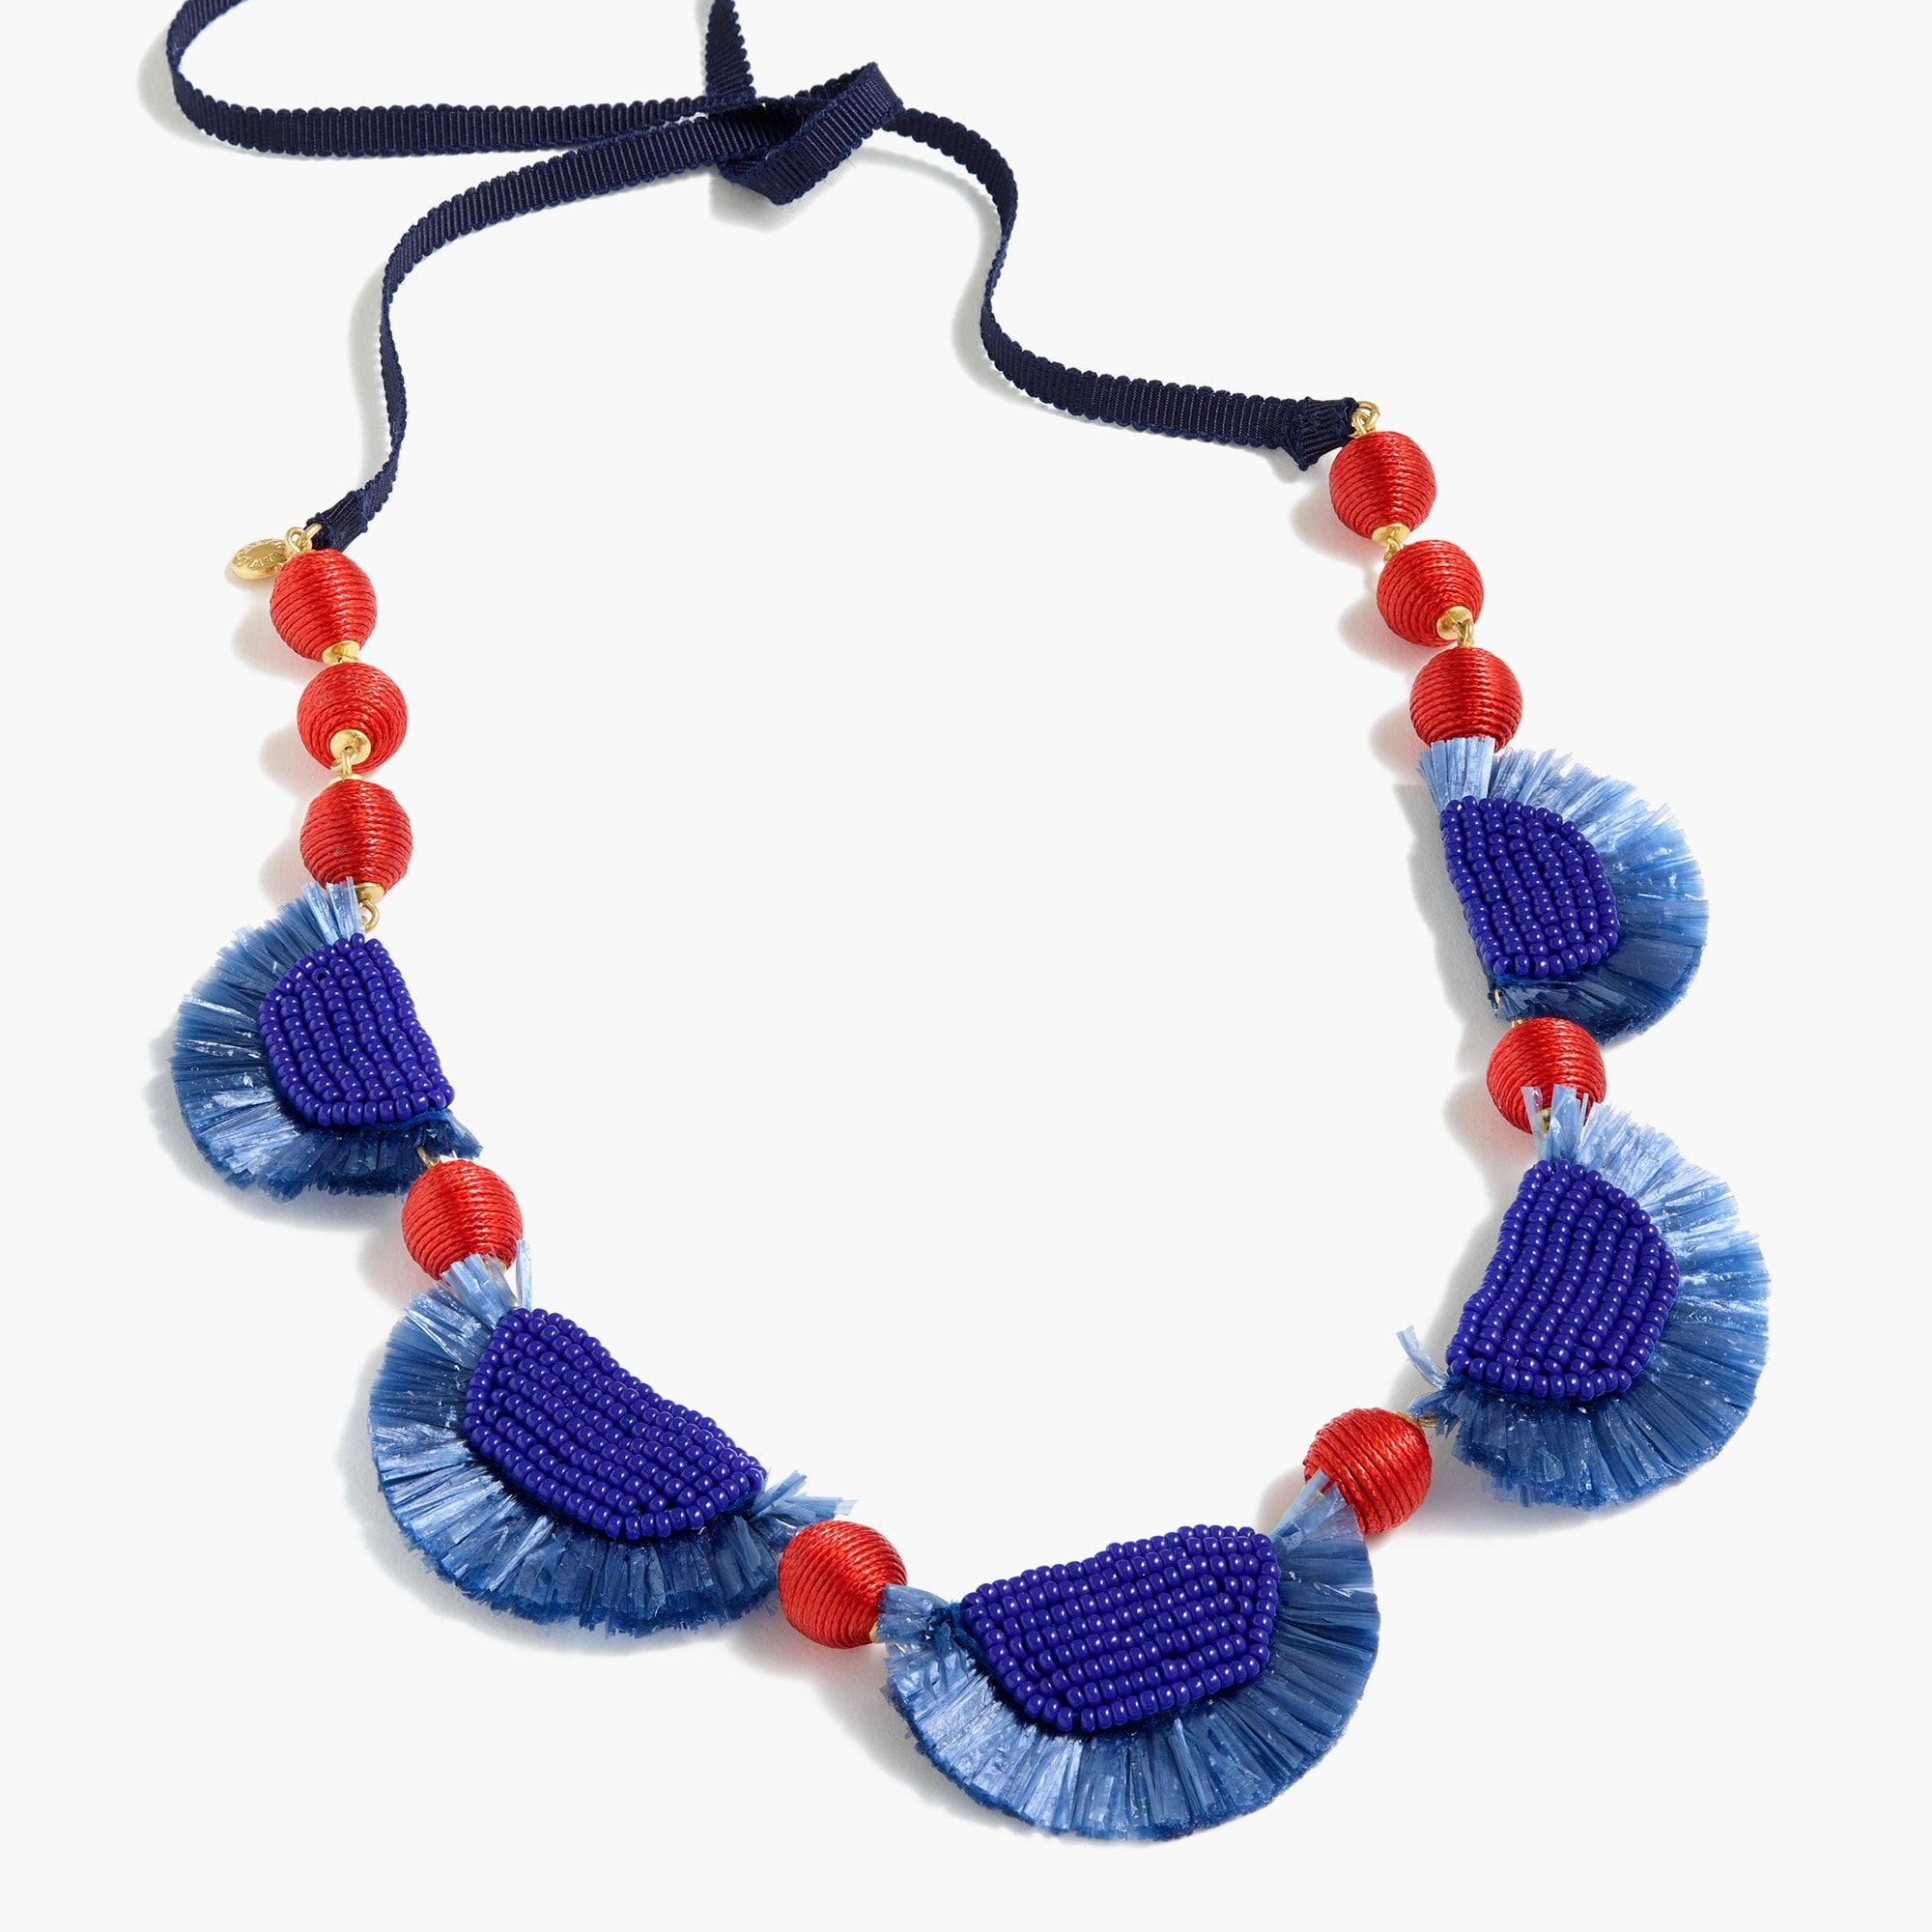 Bead-and-raffia necklace